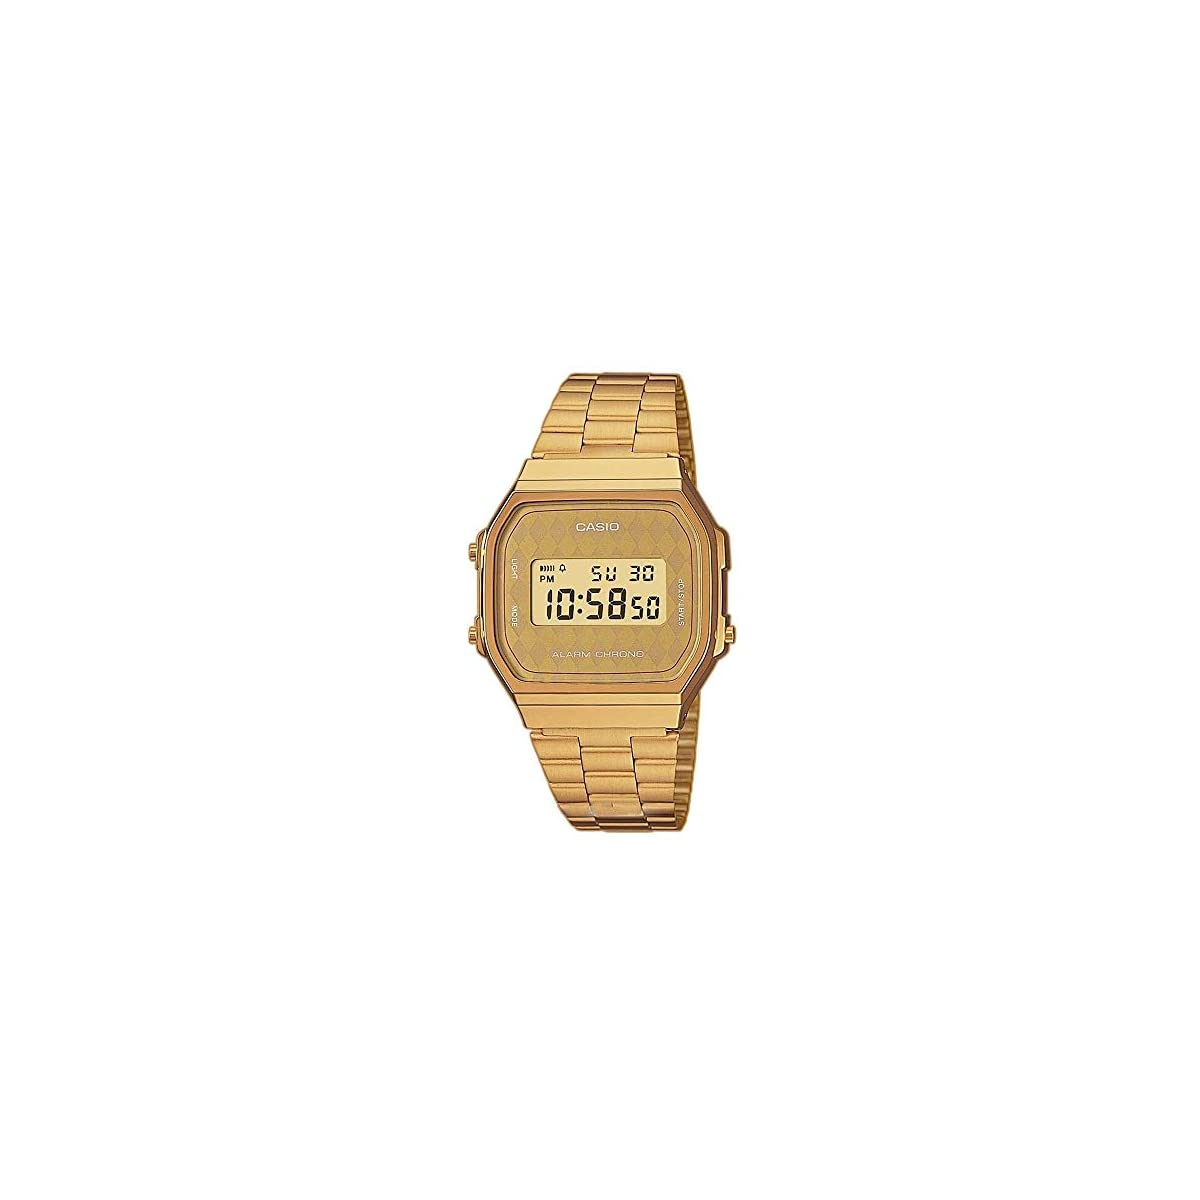 41wkYPy1CLL. SS1200  - Casio Reloj Unisex Collection A168WG